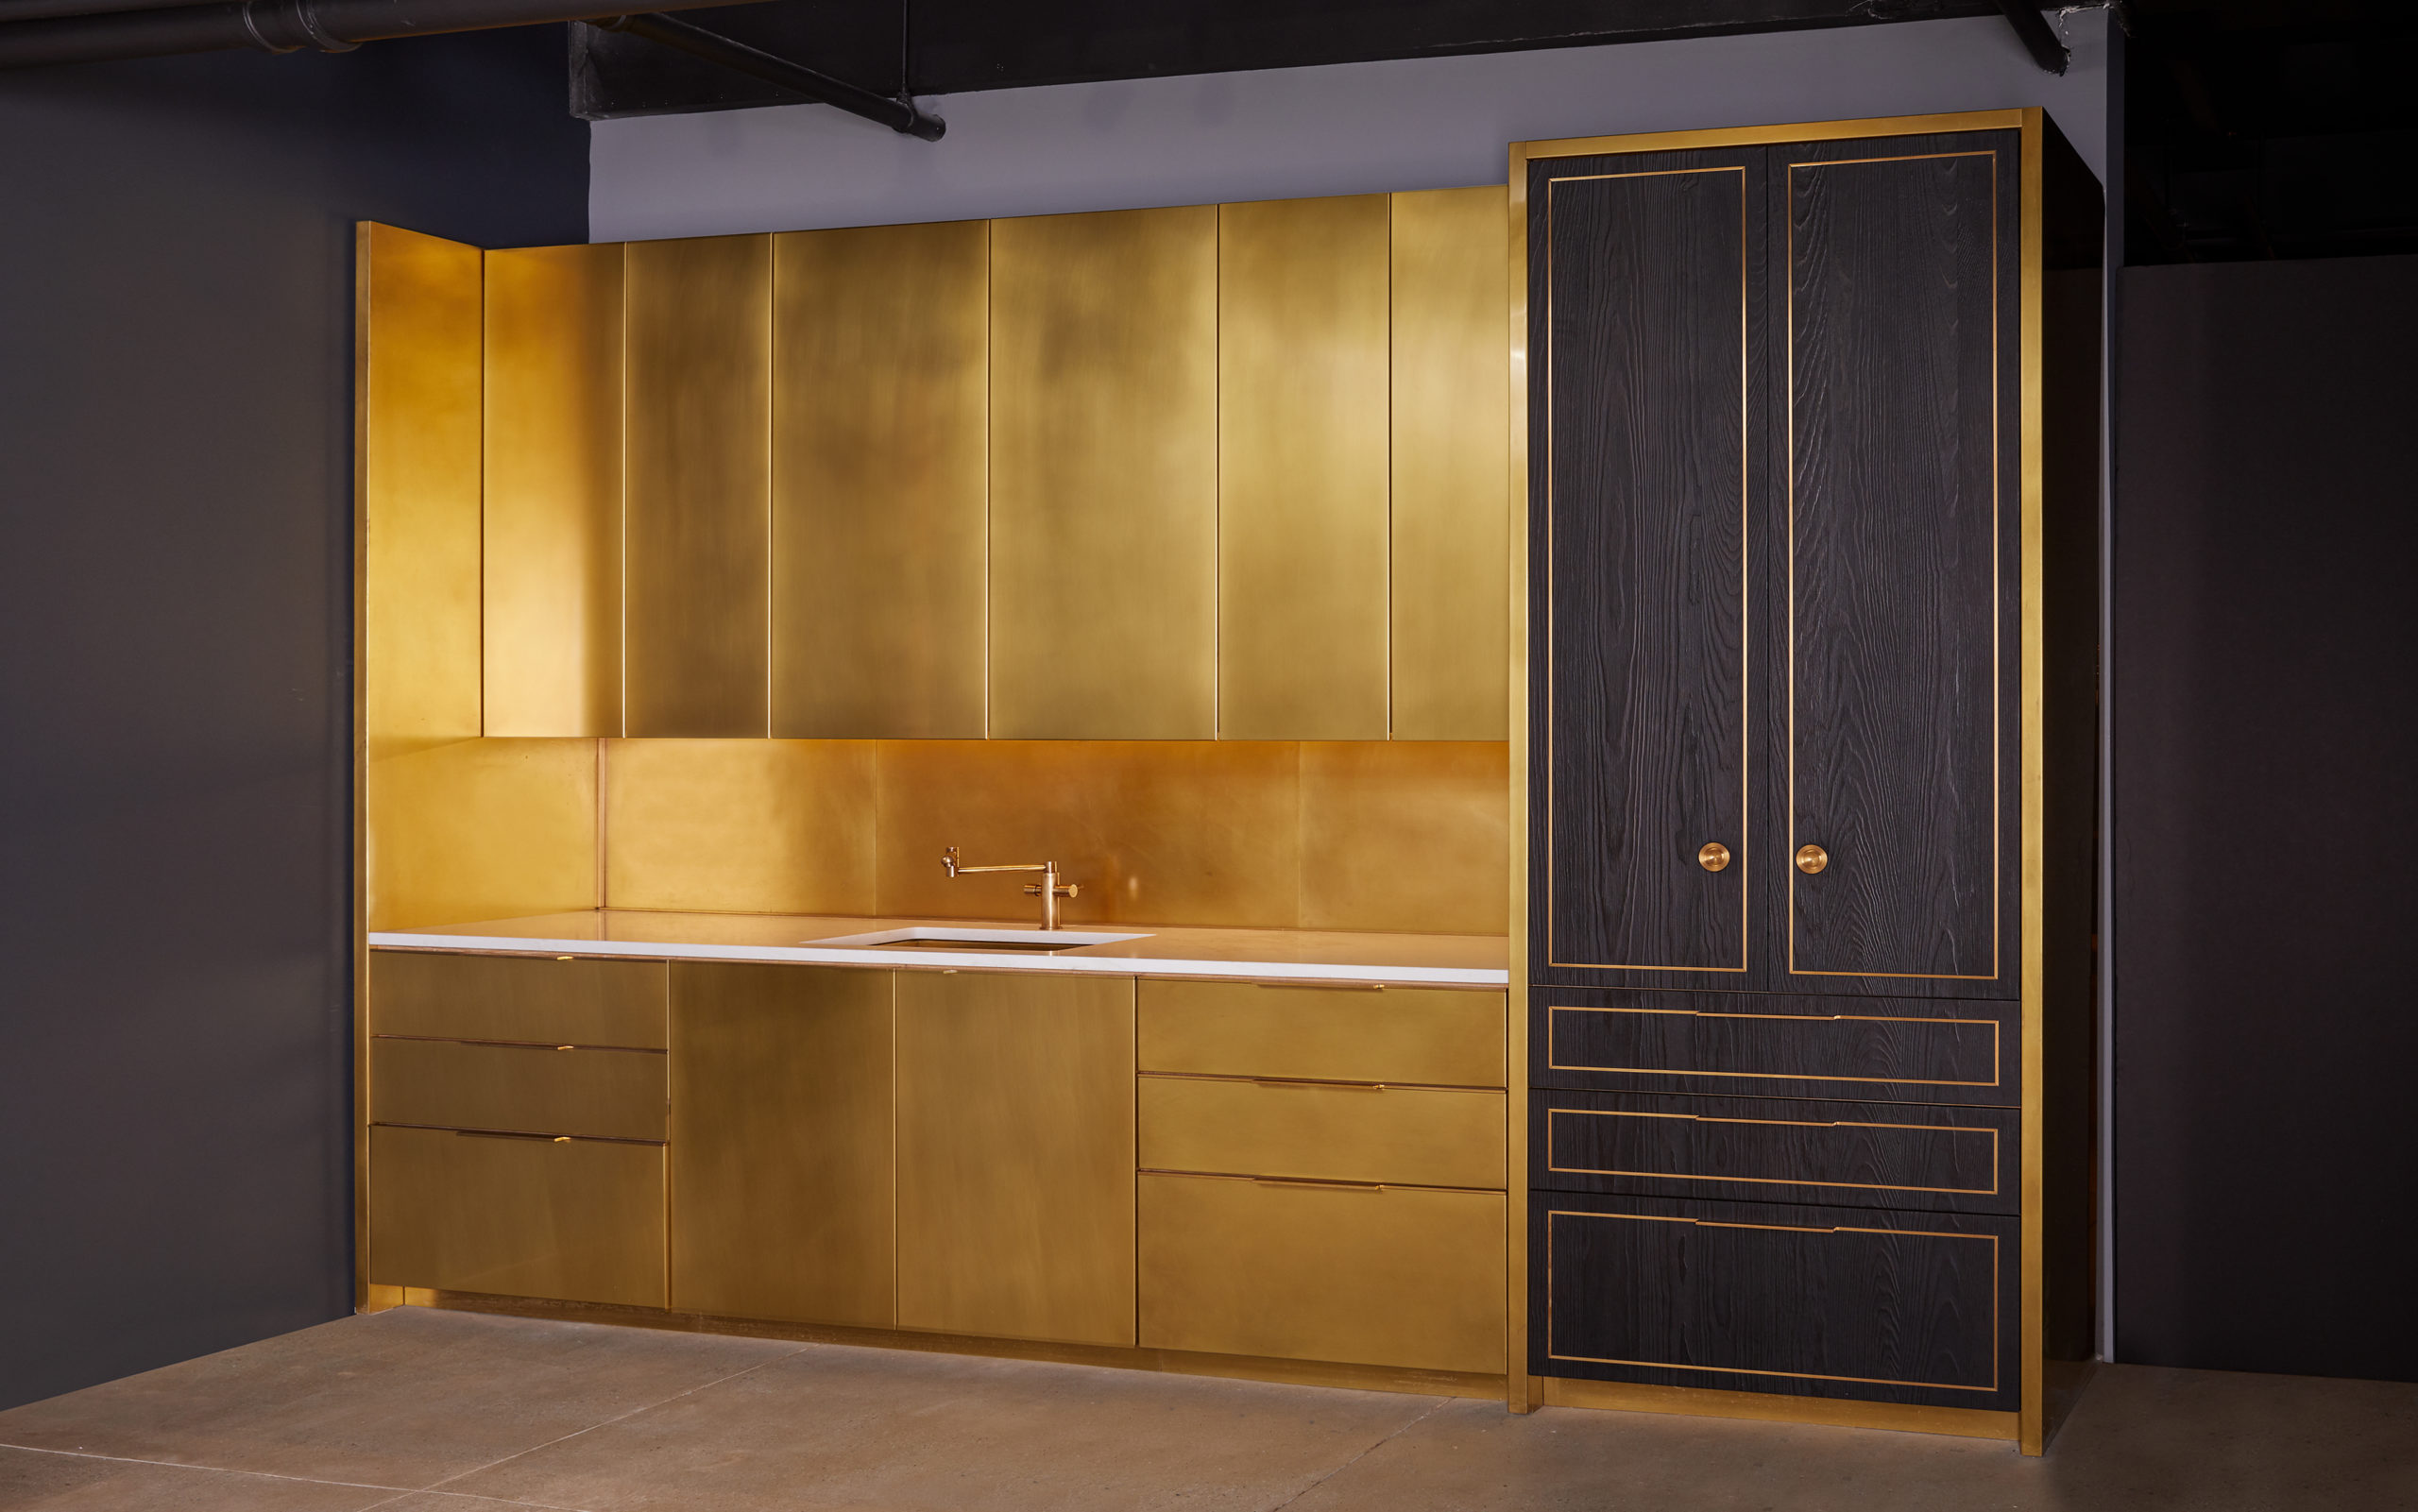 amuneal_products_WNWN_NYDC_5Brass-Kitchen-Char-Pantry-amuneal_nycshowroom_sept19_4455-scaled-1